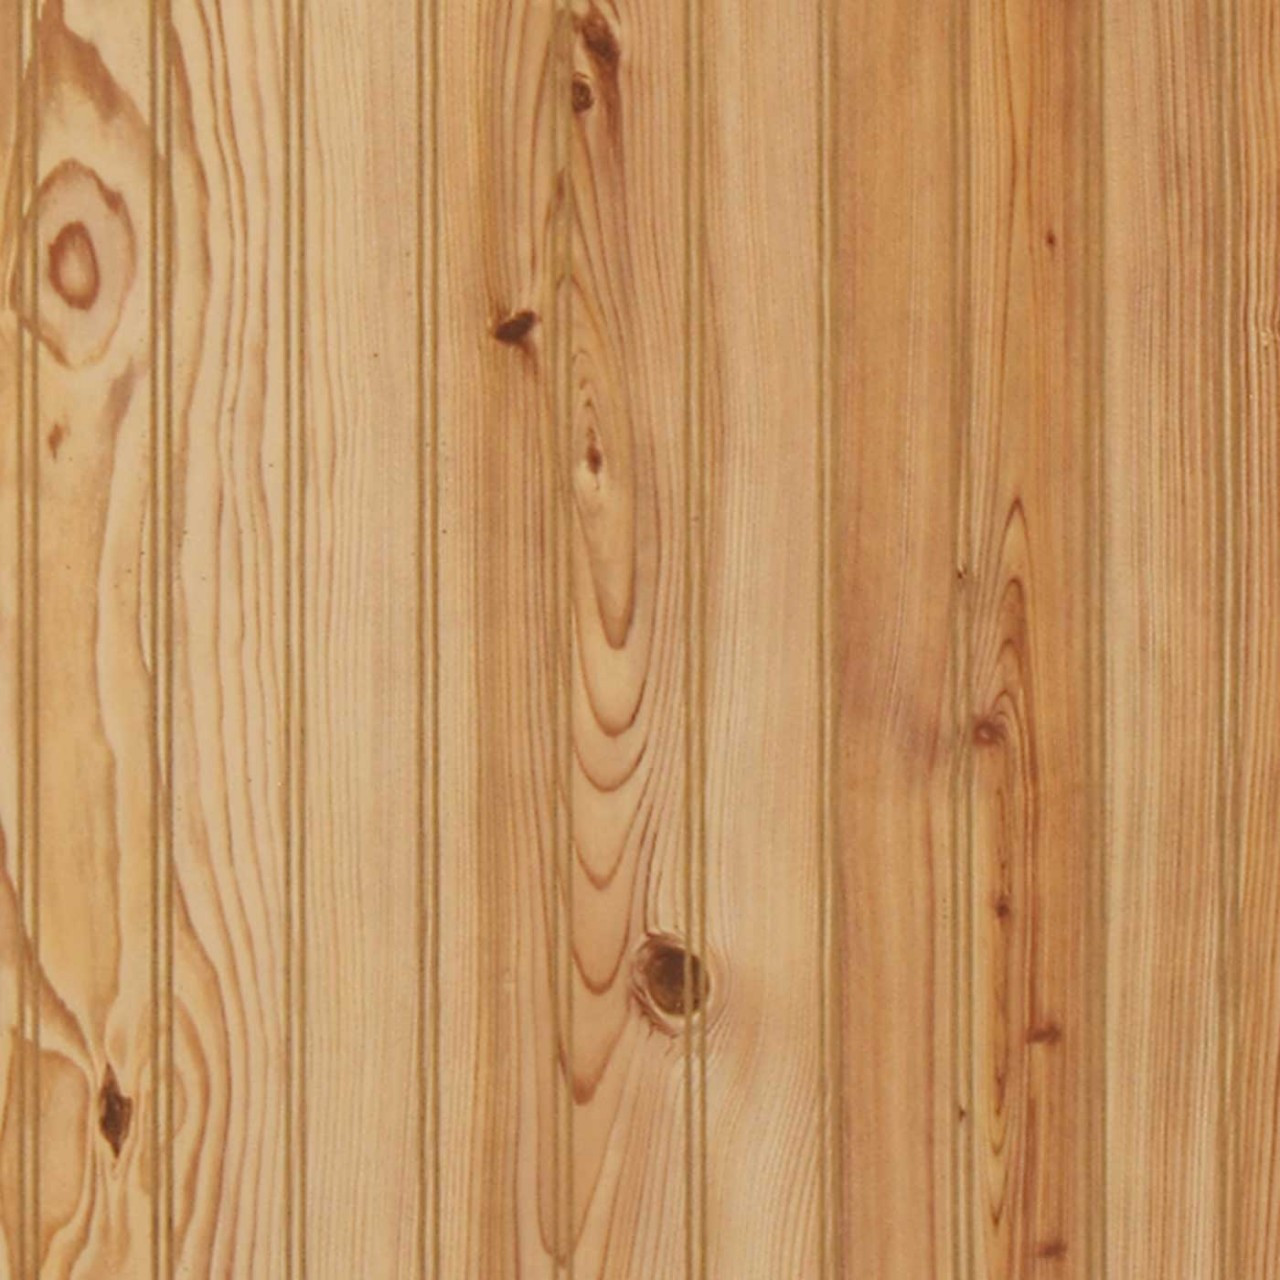 Very Impressive portraiture of Home Paneling   Planking   Cornices Plywood Wall Paneling Ridgetop  with #804628 color and 1280x1280 pixels